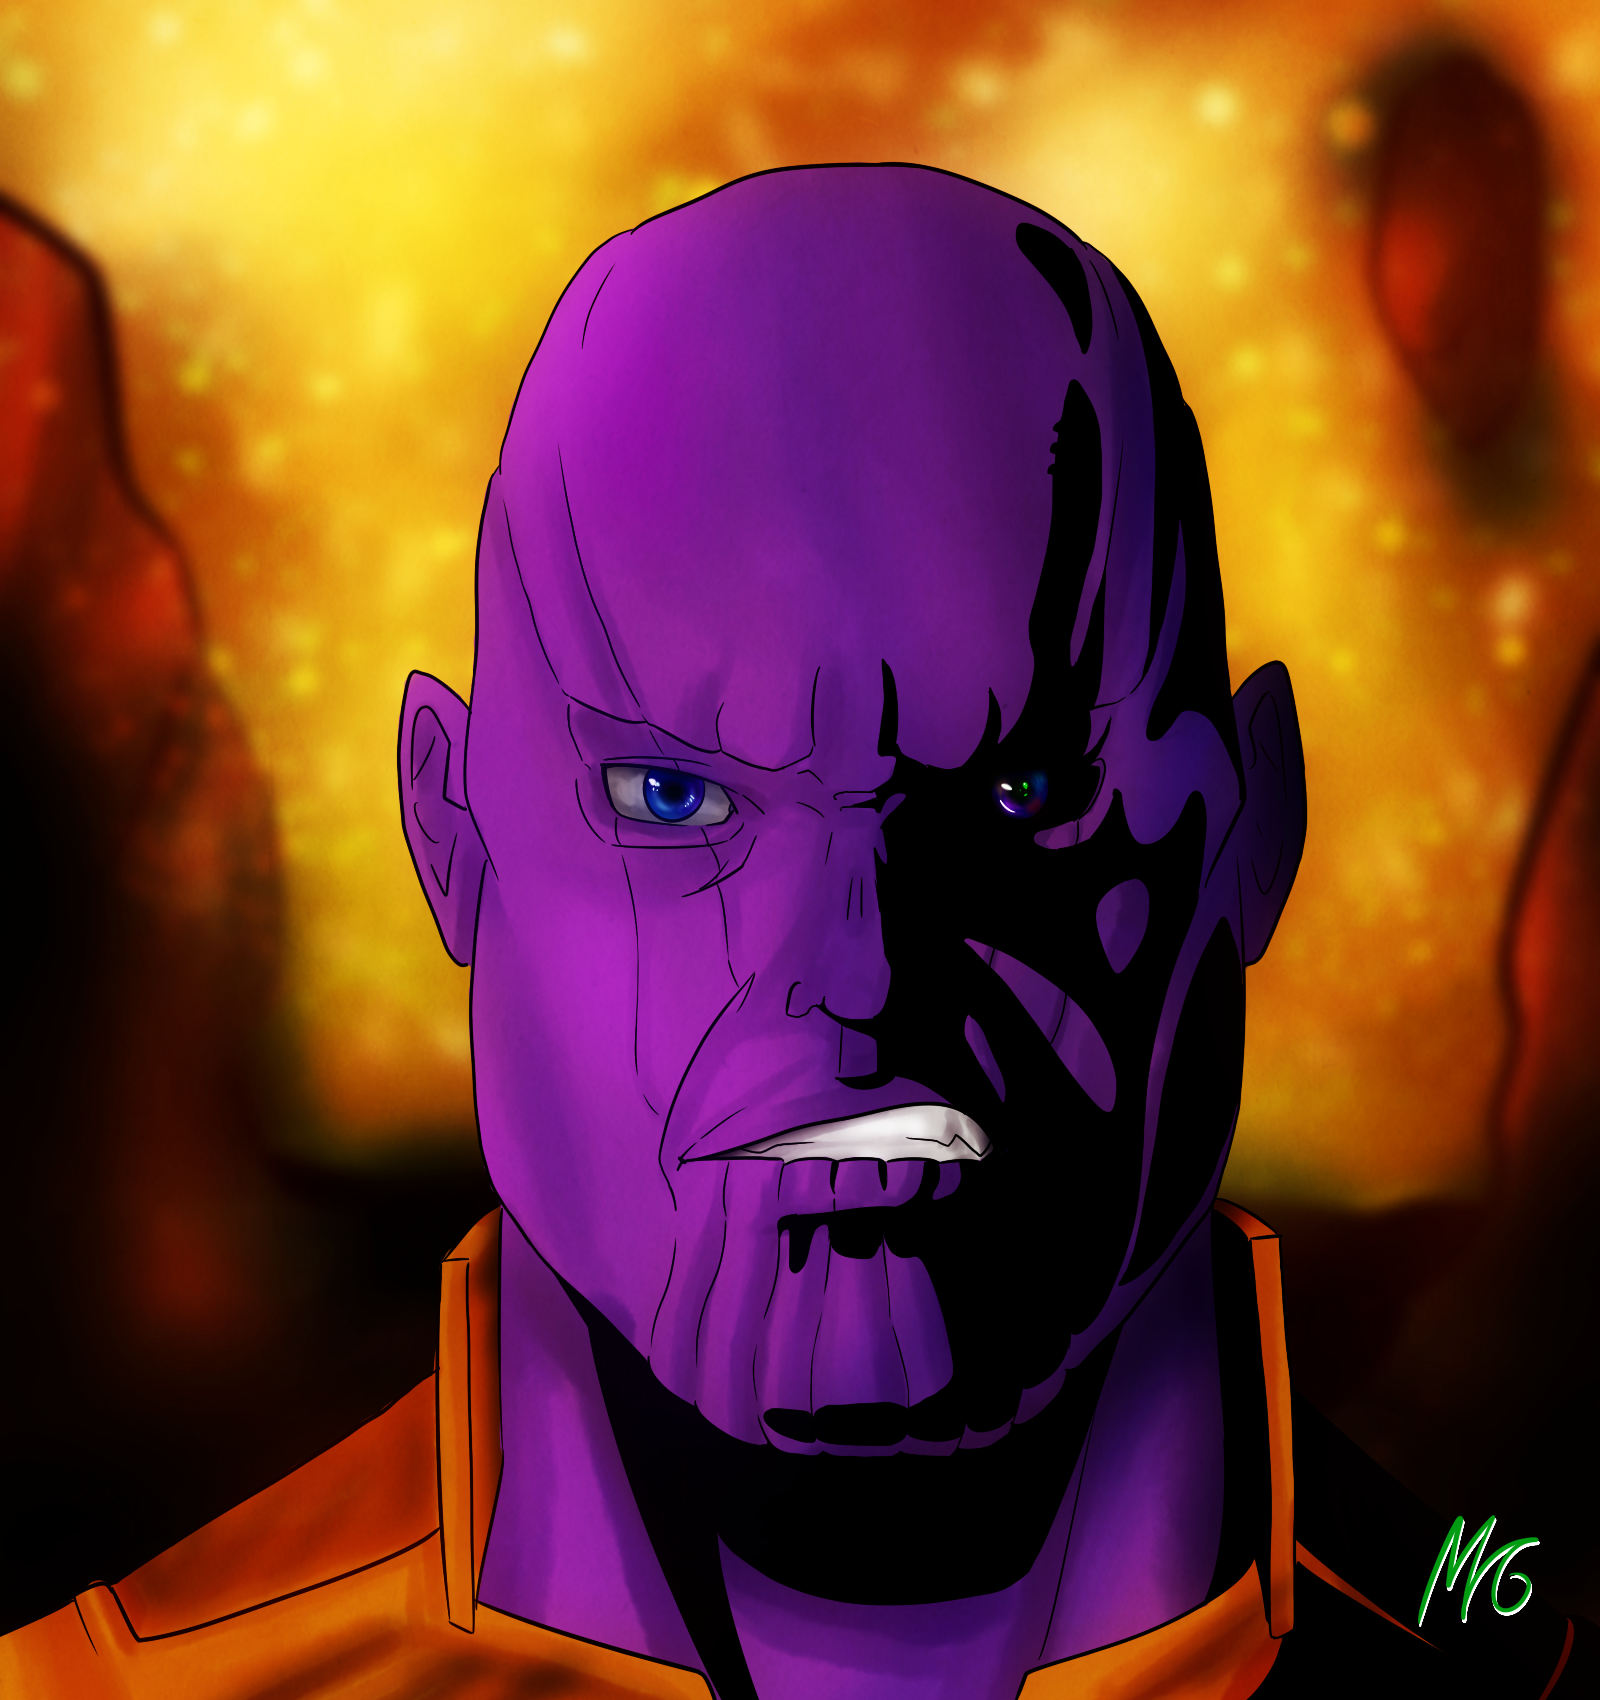 Thanos in anime style by MaxGreen88 on Newgrounds